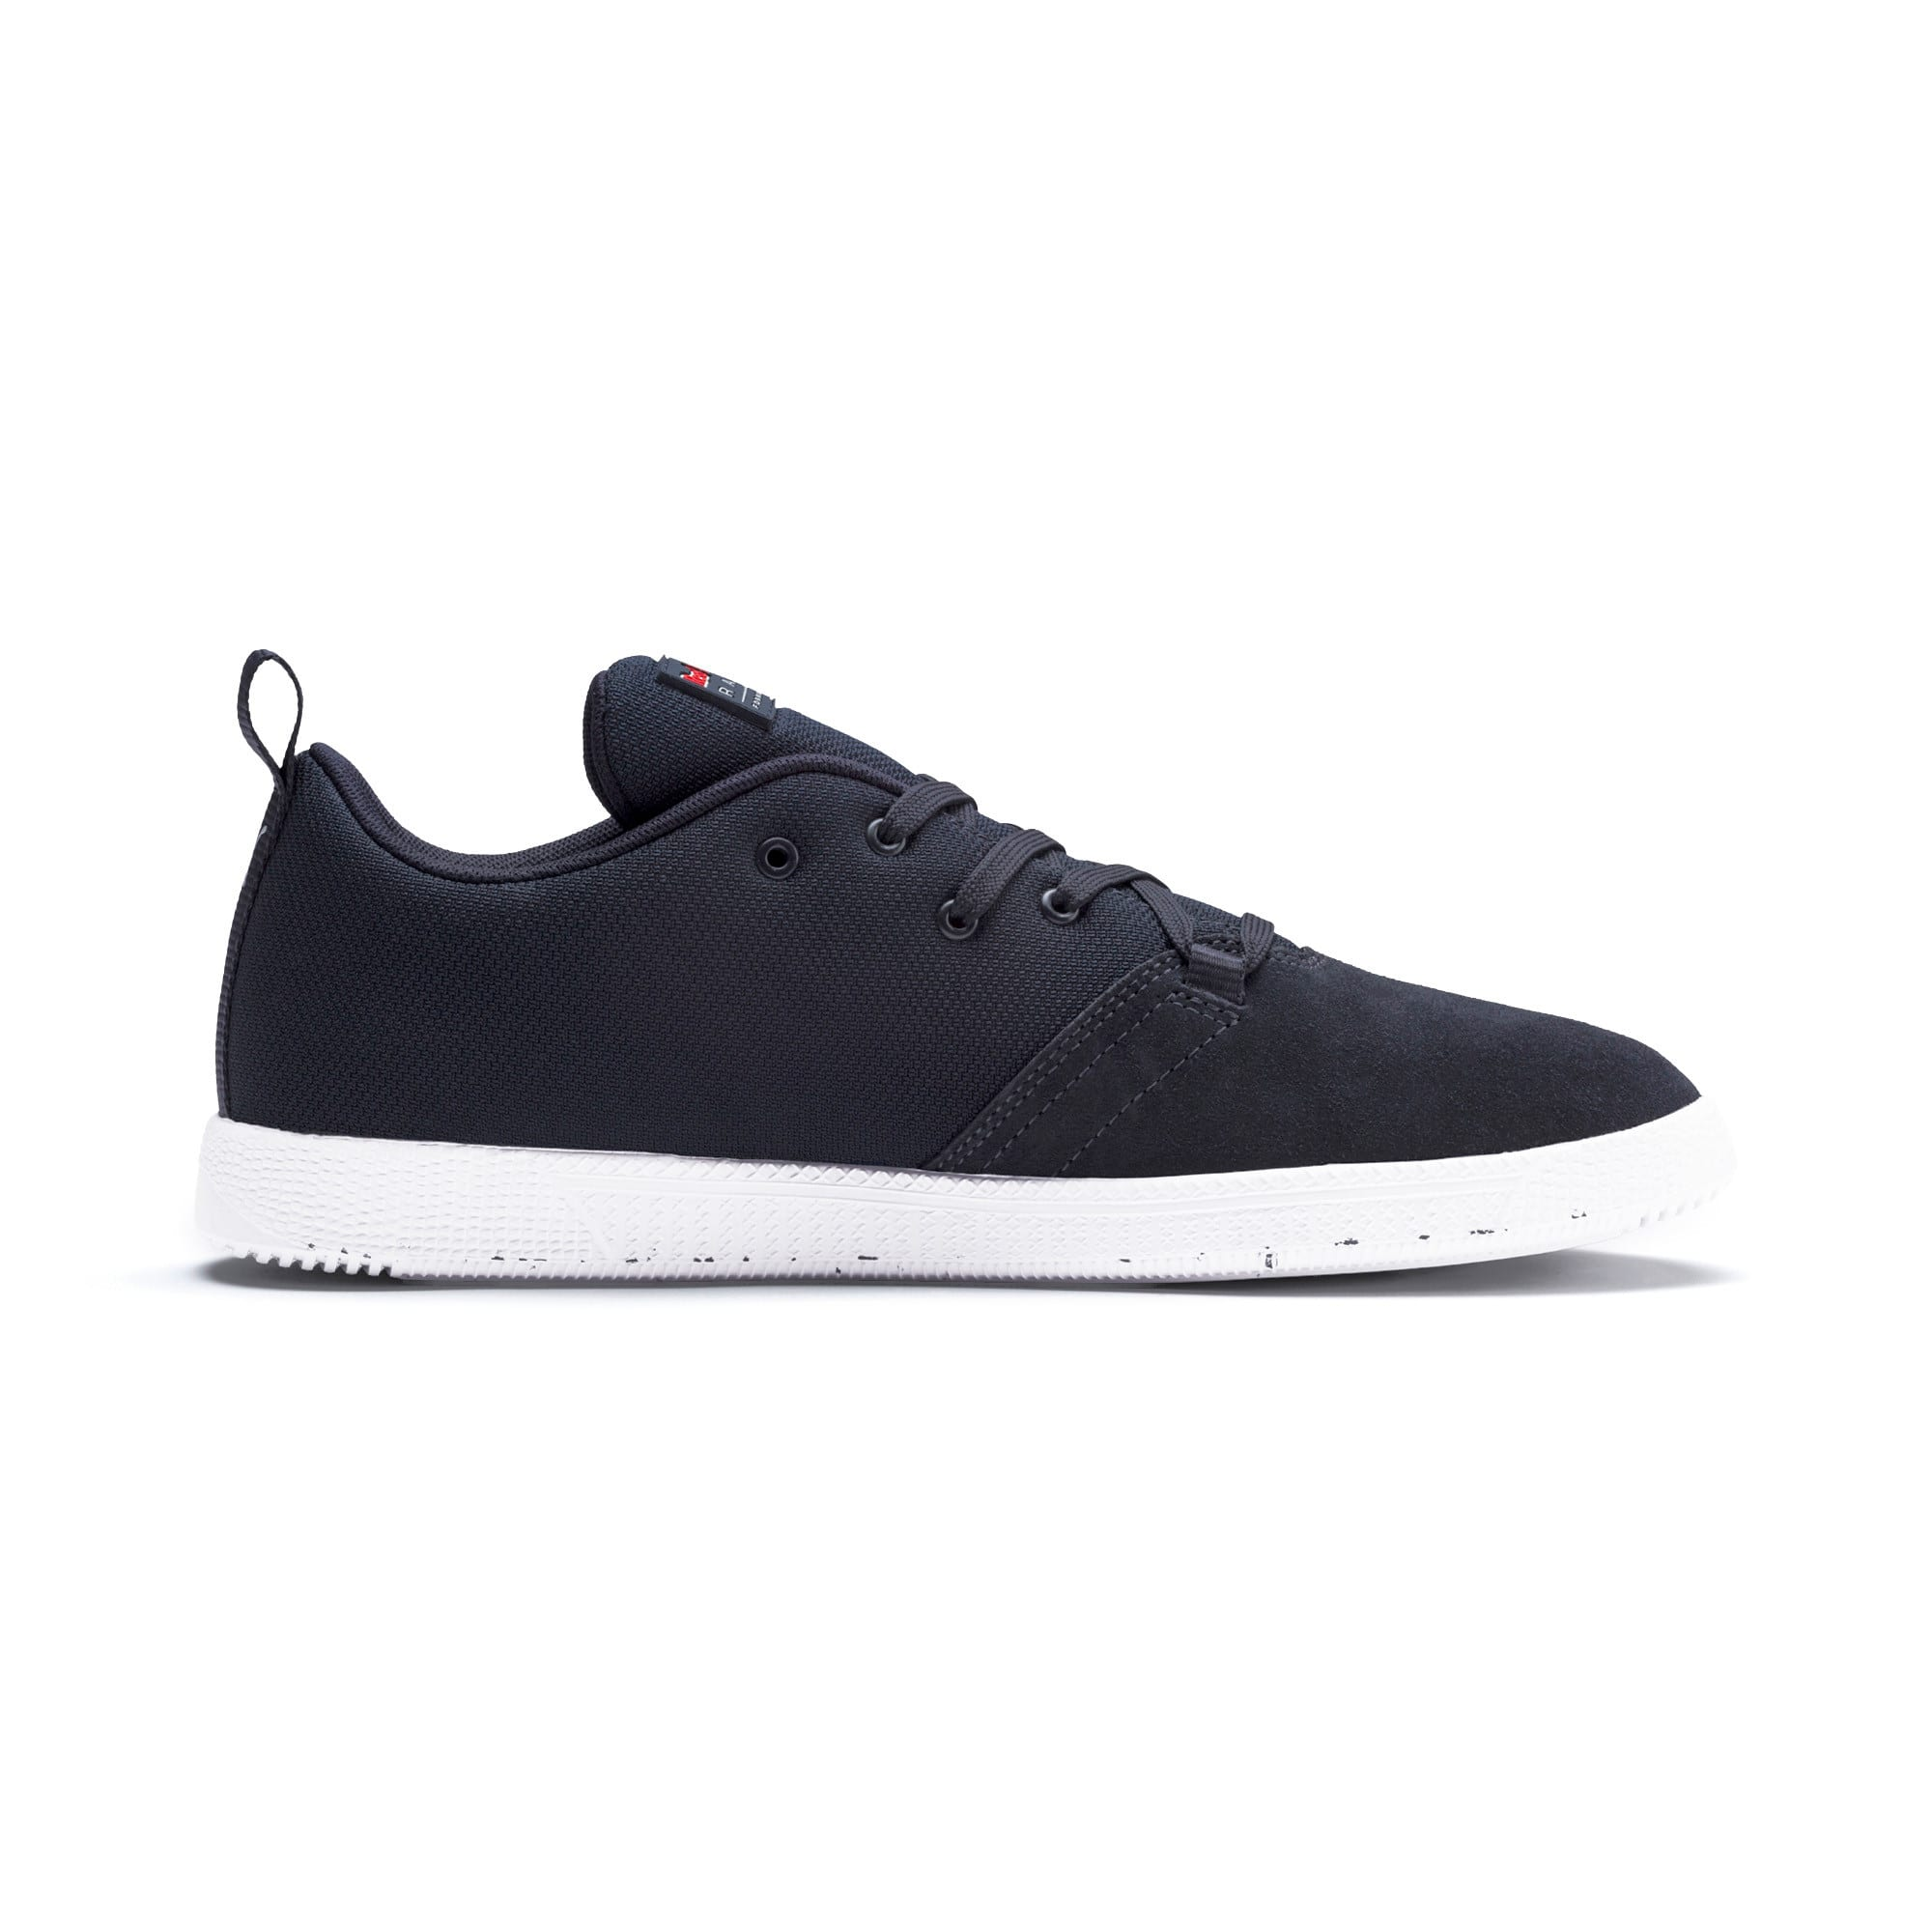 Thumbnail 5 of Red Bull Racing Cups Lo Trainers, NIGHT SKY-White-Chinese Red, medium-IND